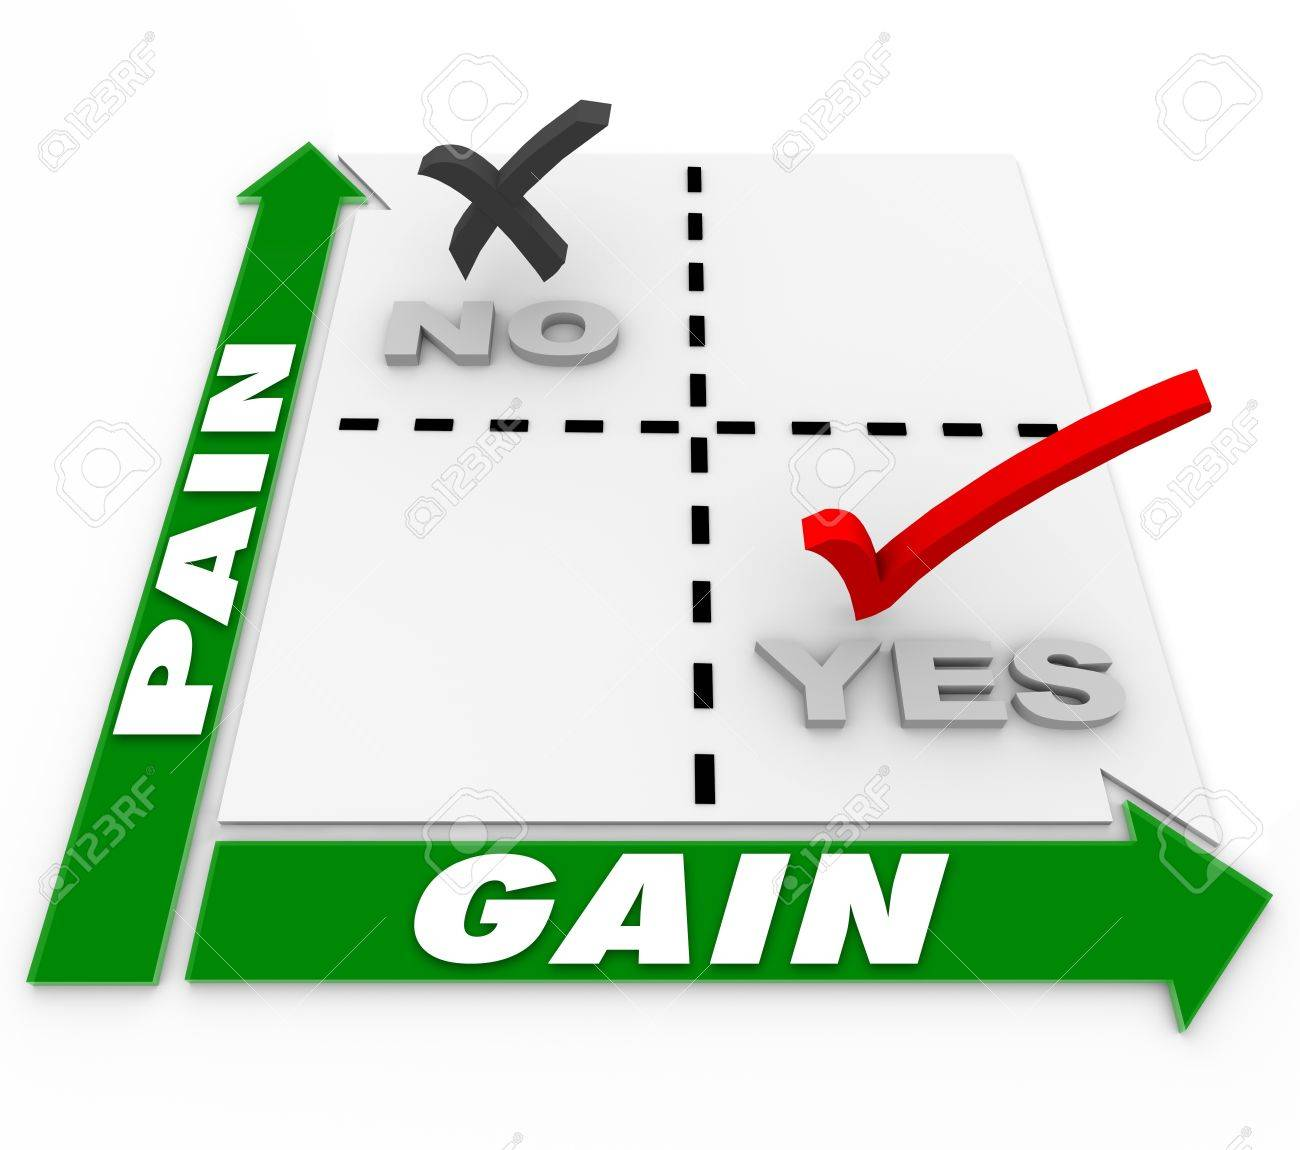 The words Pain and Gain on a matrix of choices showing how to minimize pain or sacrifice in order to maximize returns and results Stock Photo - 20163270